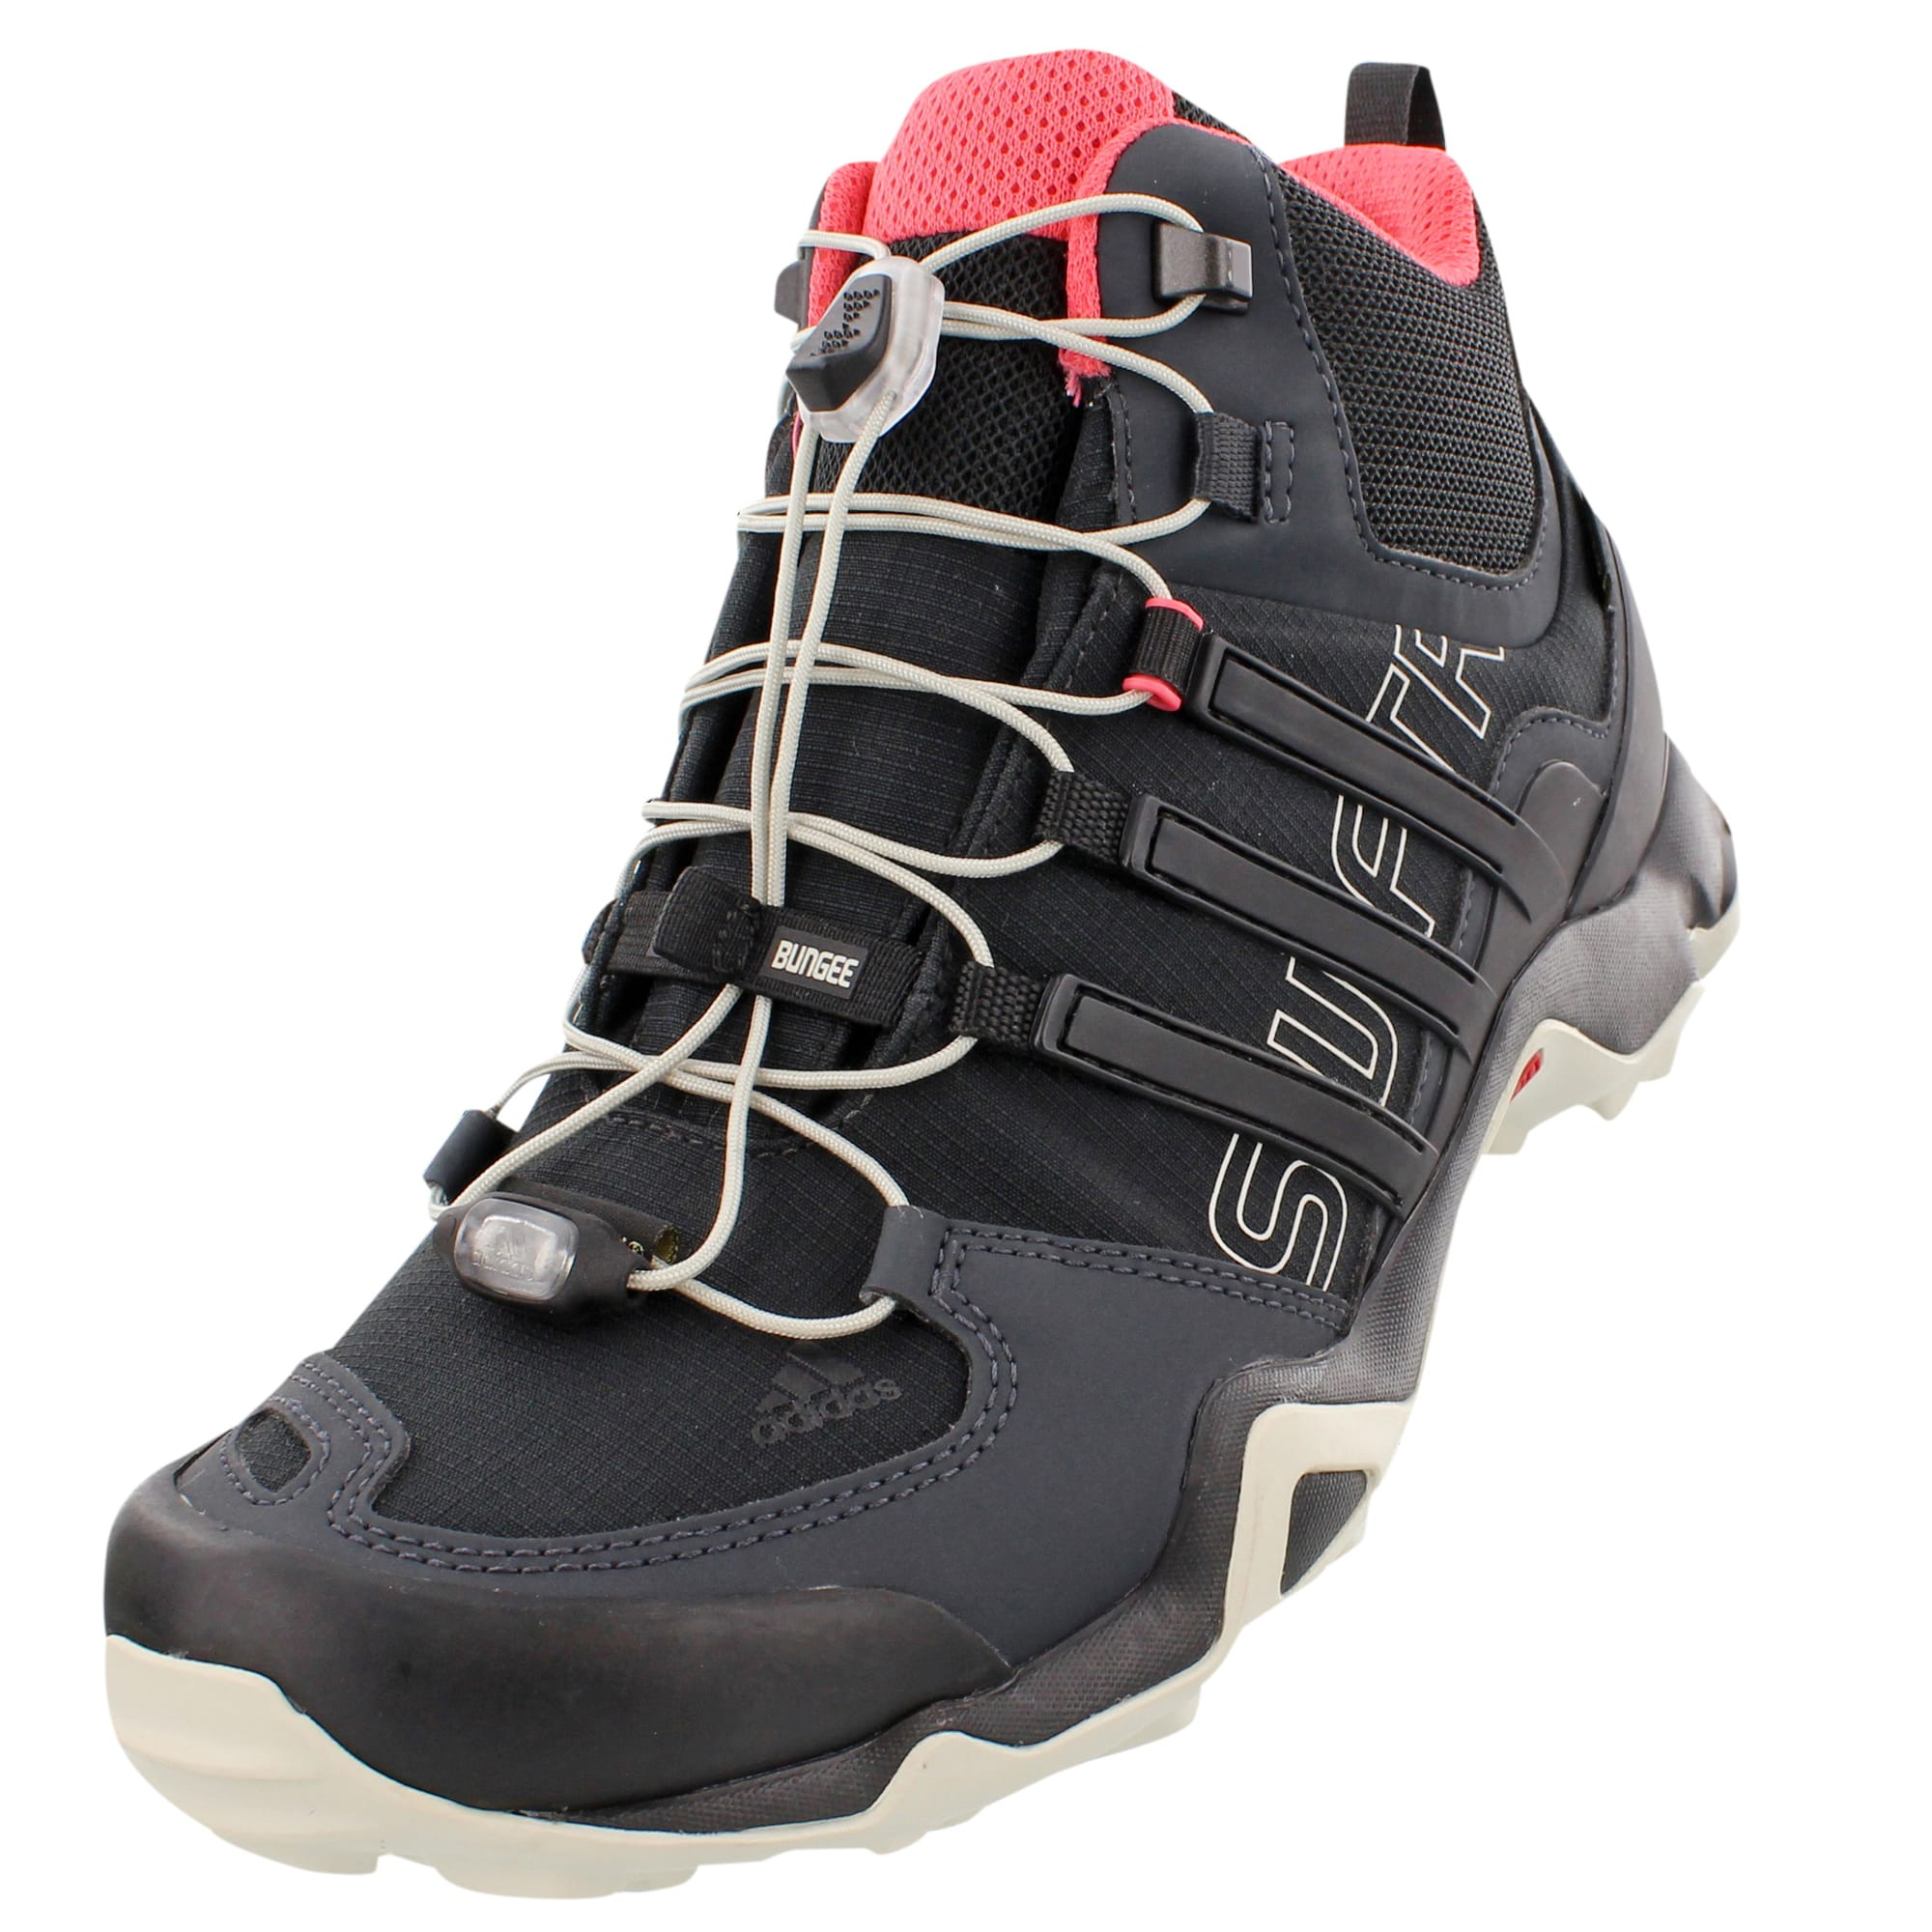 Adidas Terrex Swift R Mid Gtx Hiking Boots Womens